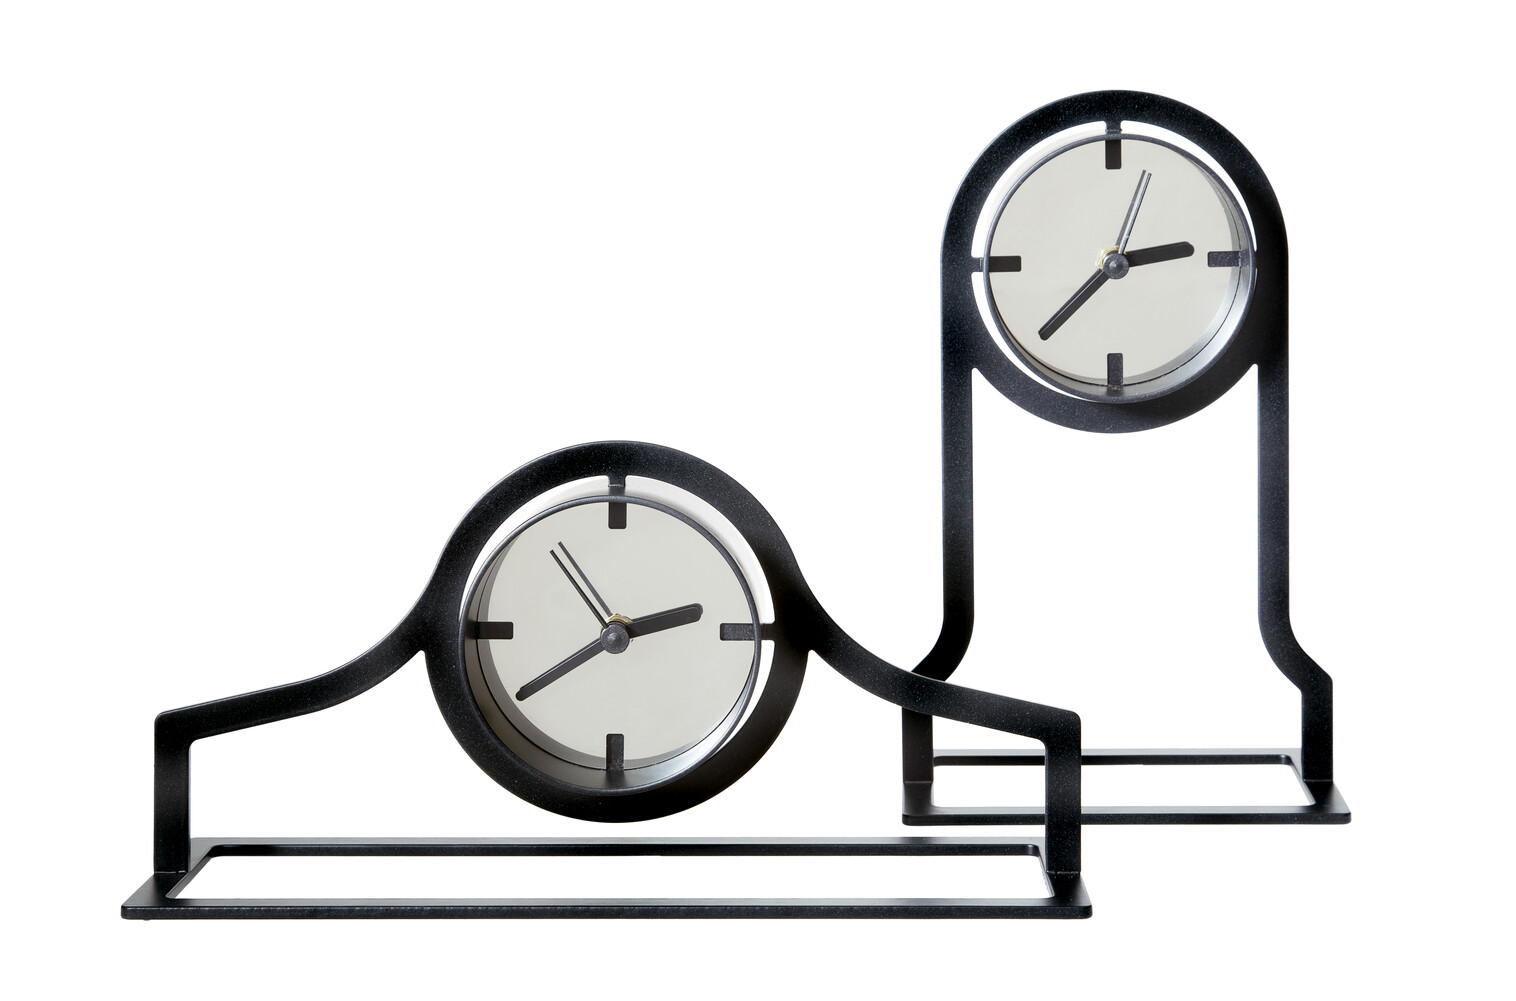 Gispen Outline clock low and high in black front view